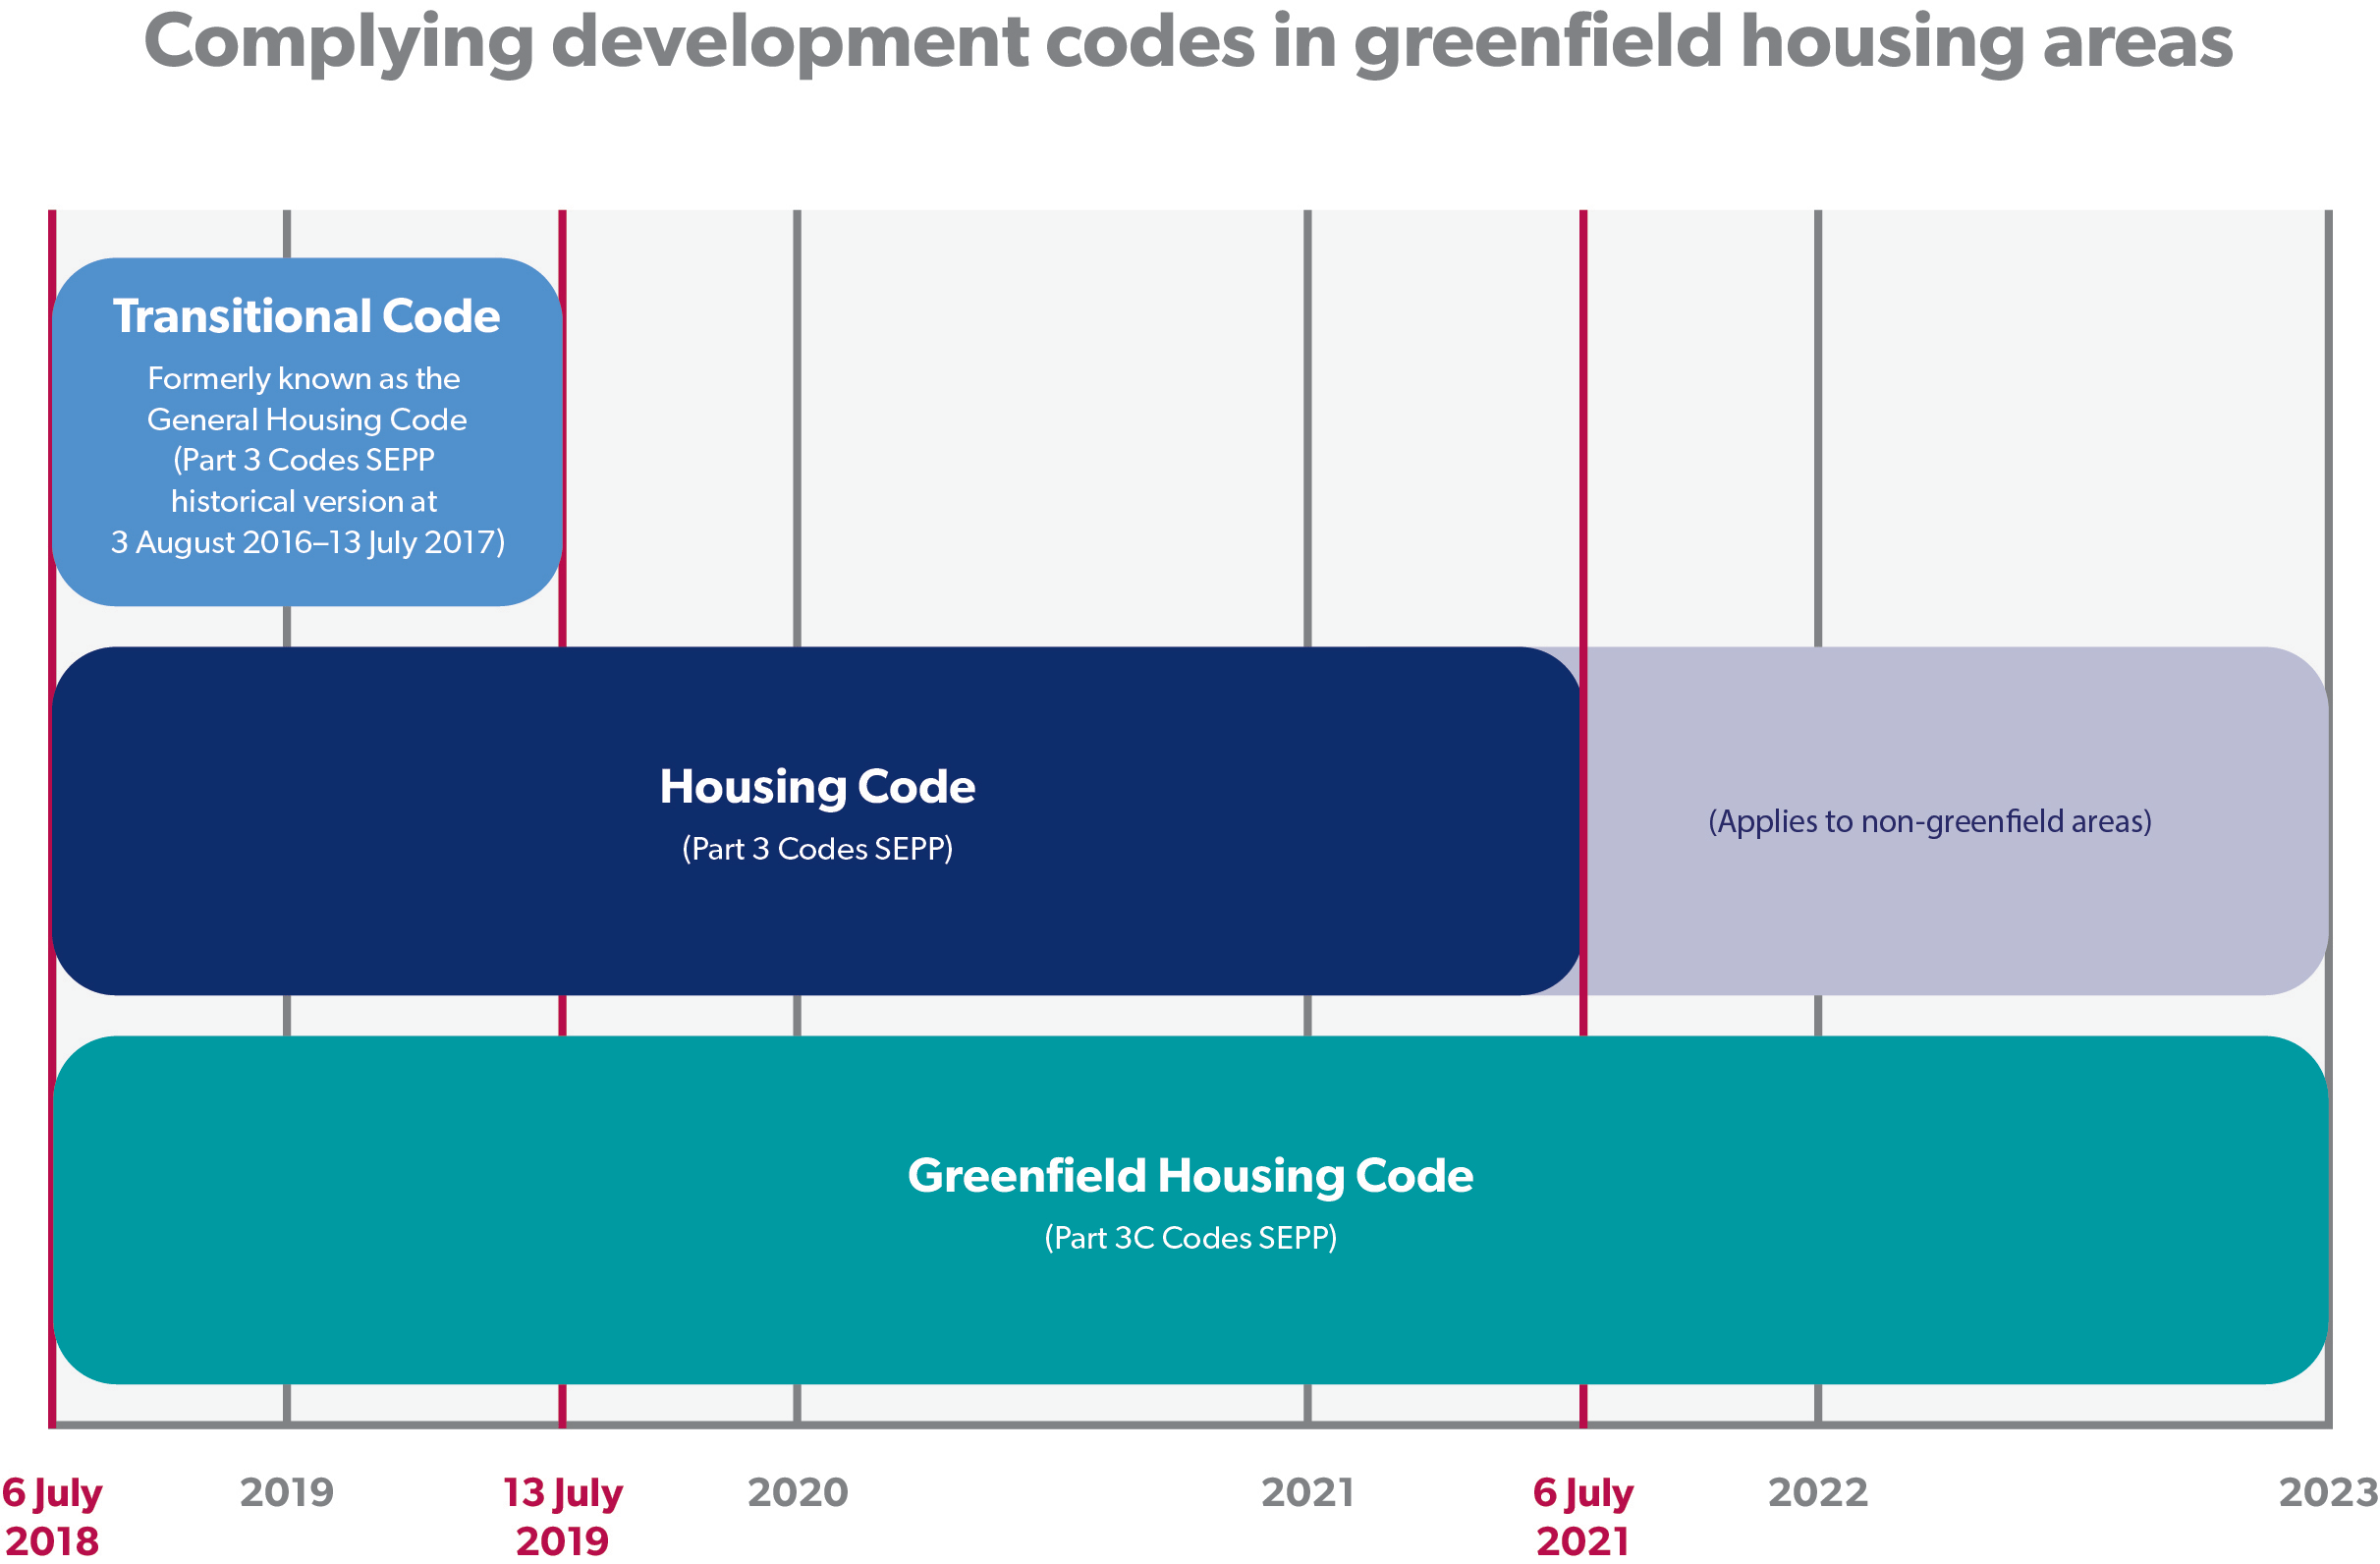 Greenfield Housing Code - NSW Department of Planning